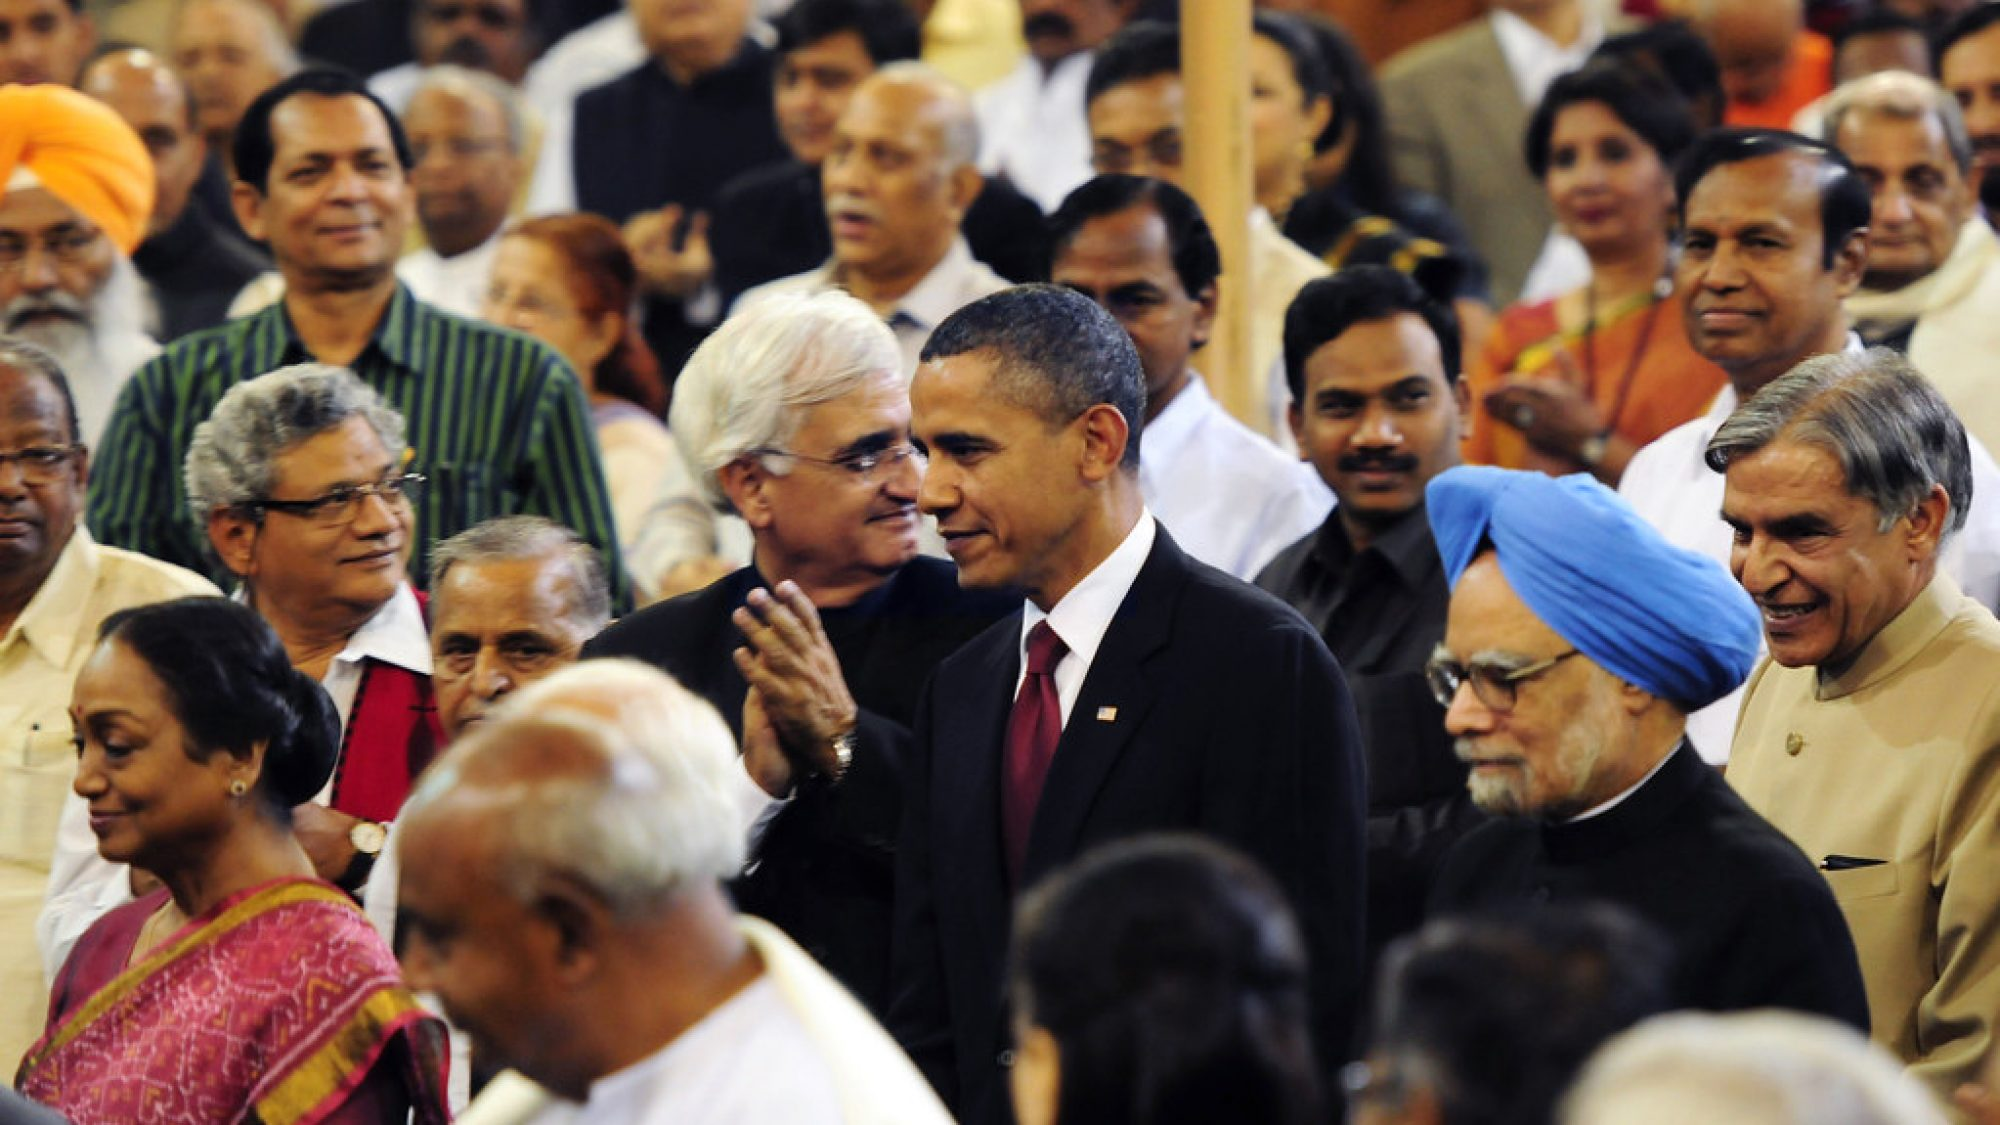 President Obama visits the Indian Parliament